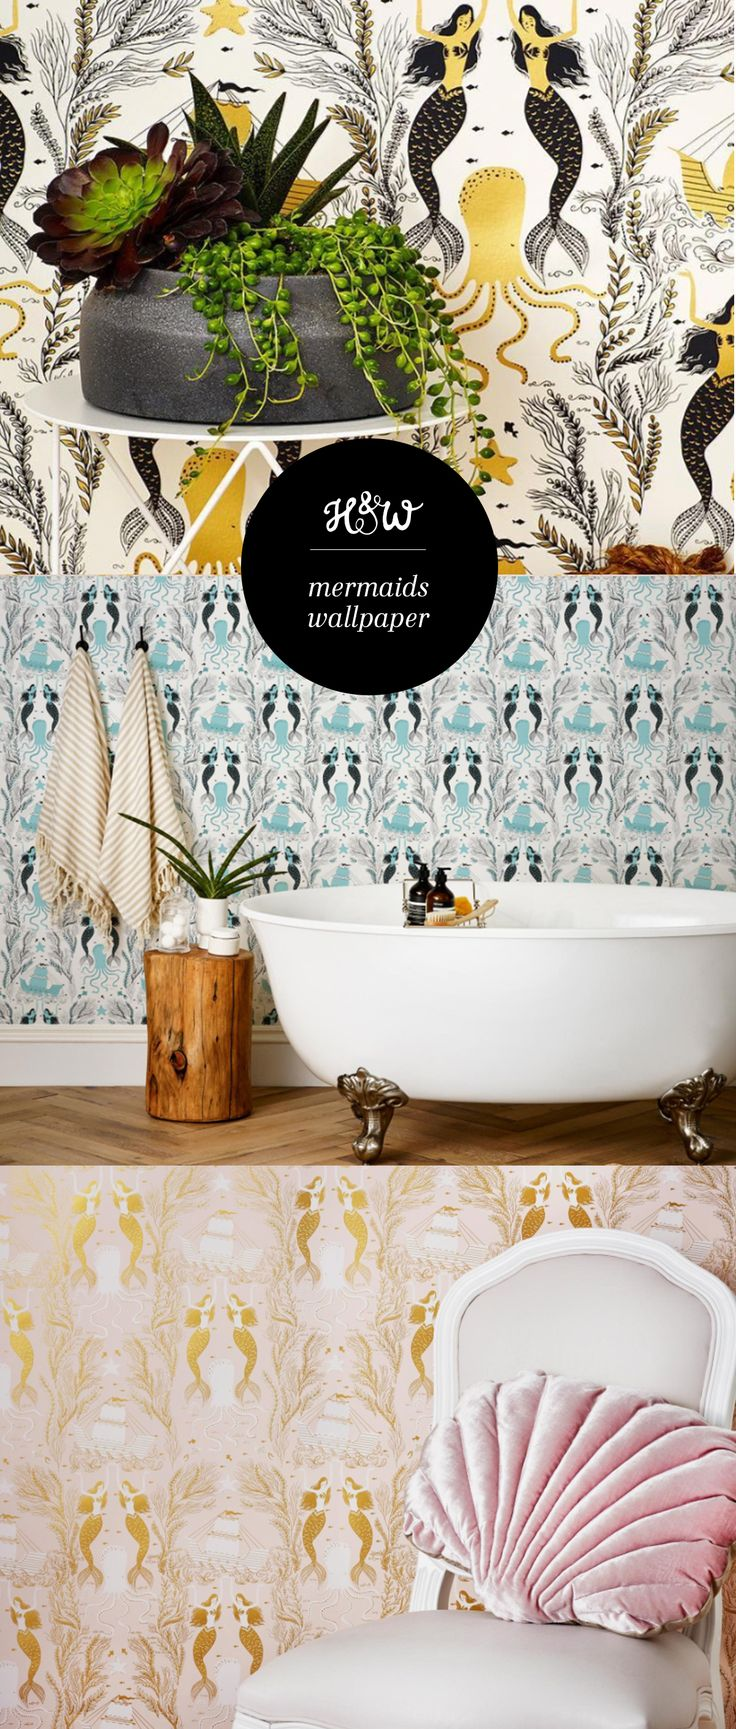 Mermaids Wallpaper from Hygge & West, available in 4 colorways